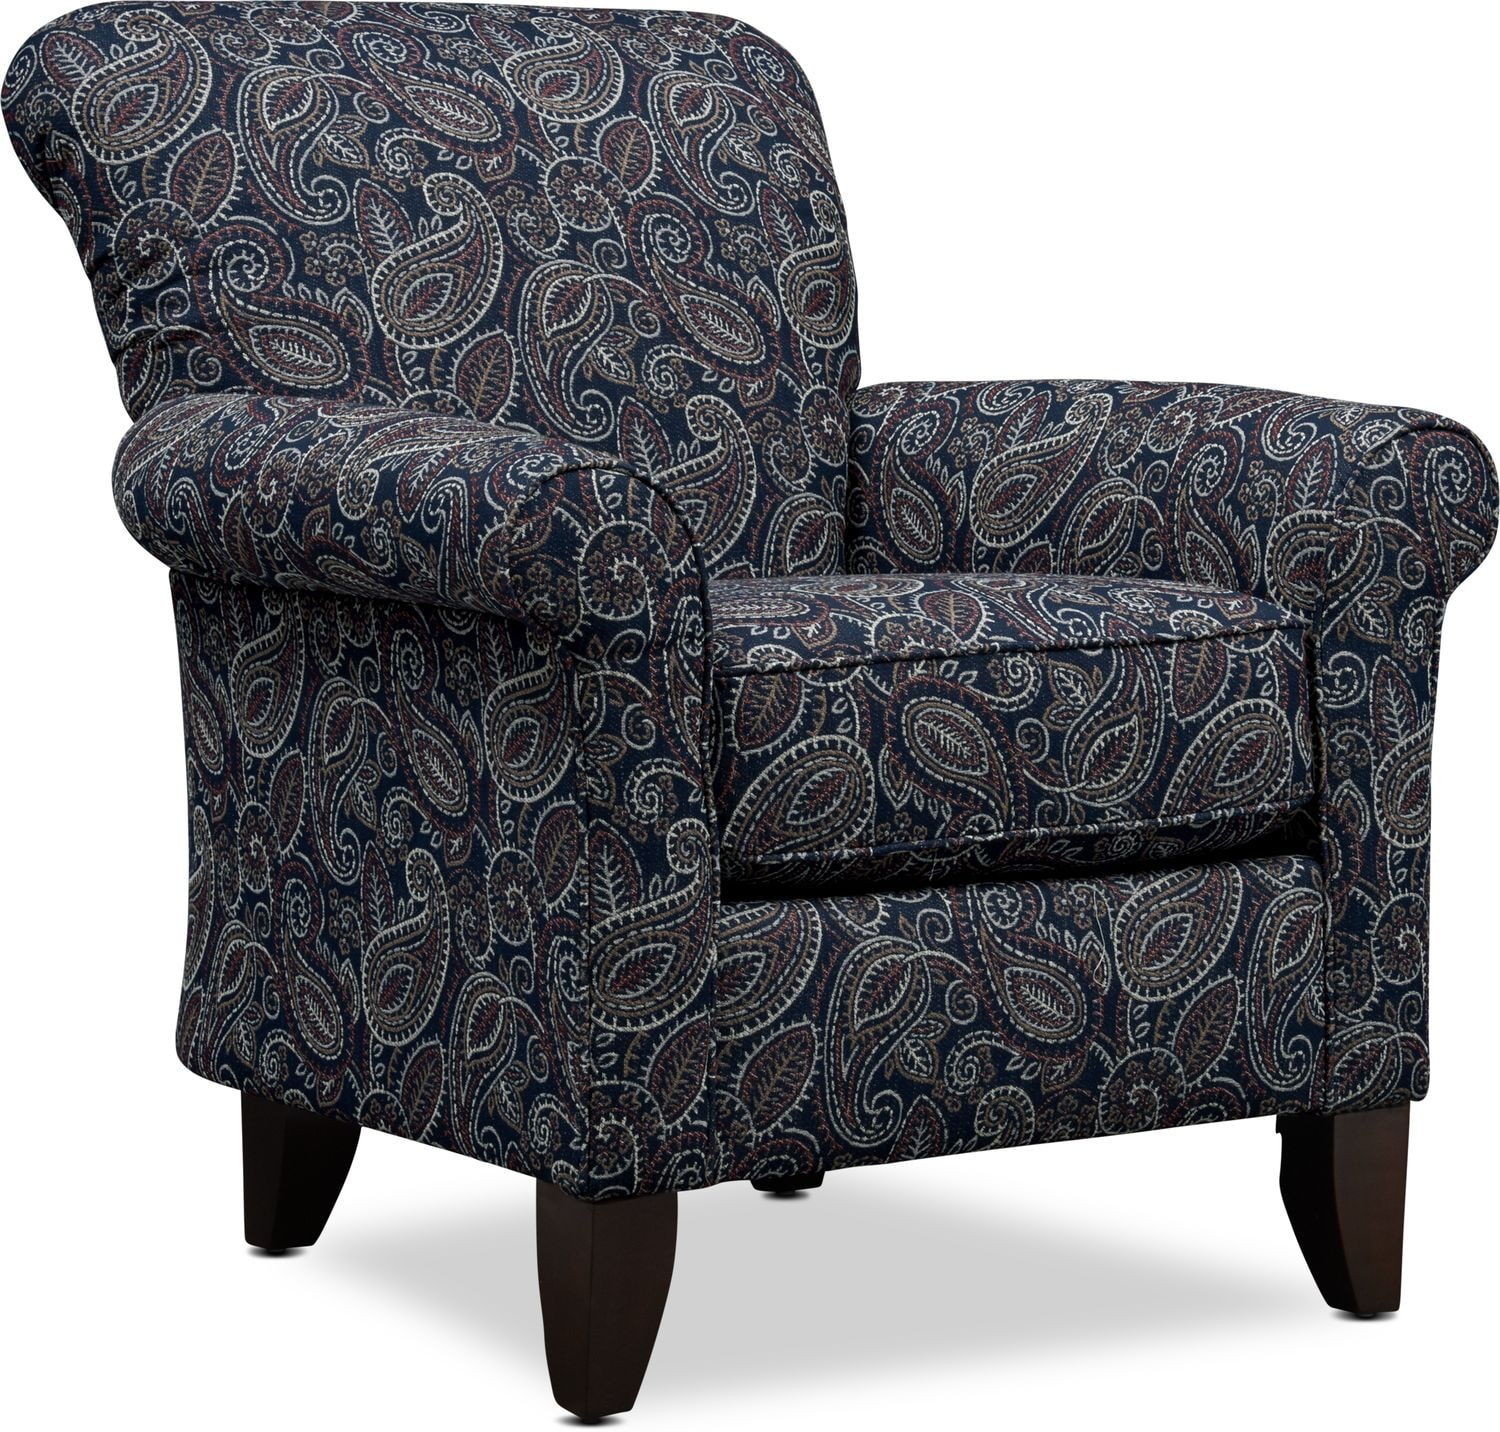 Living Room Furniture - Kingston Patterned Accent Chair